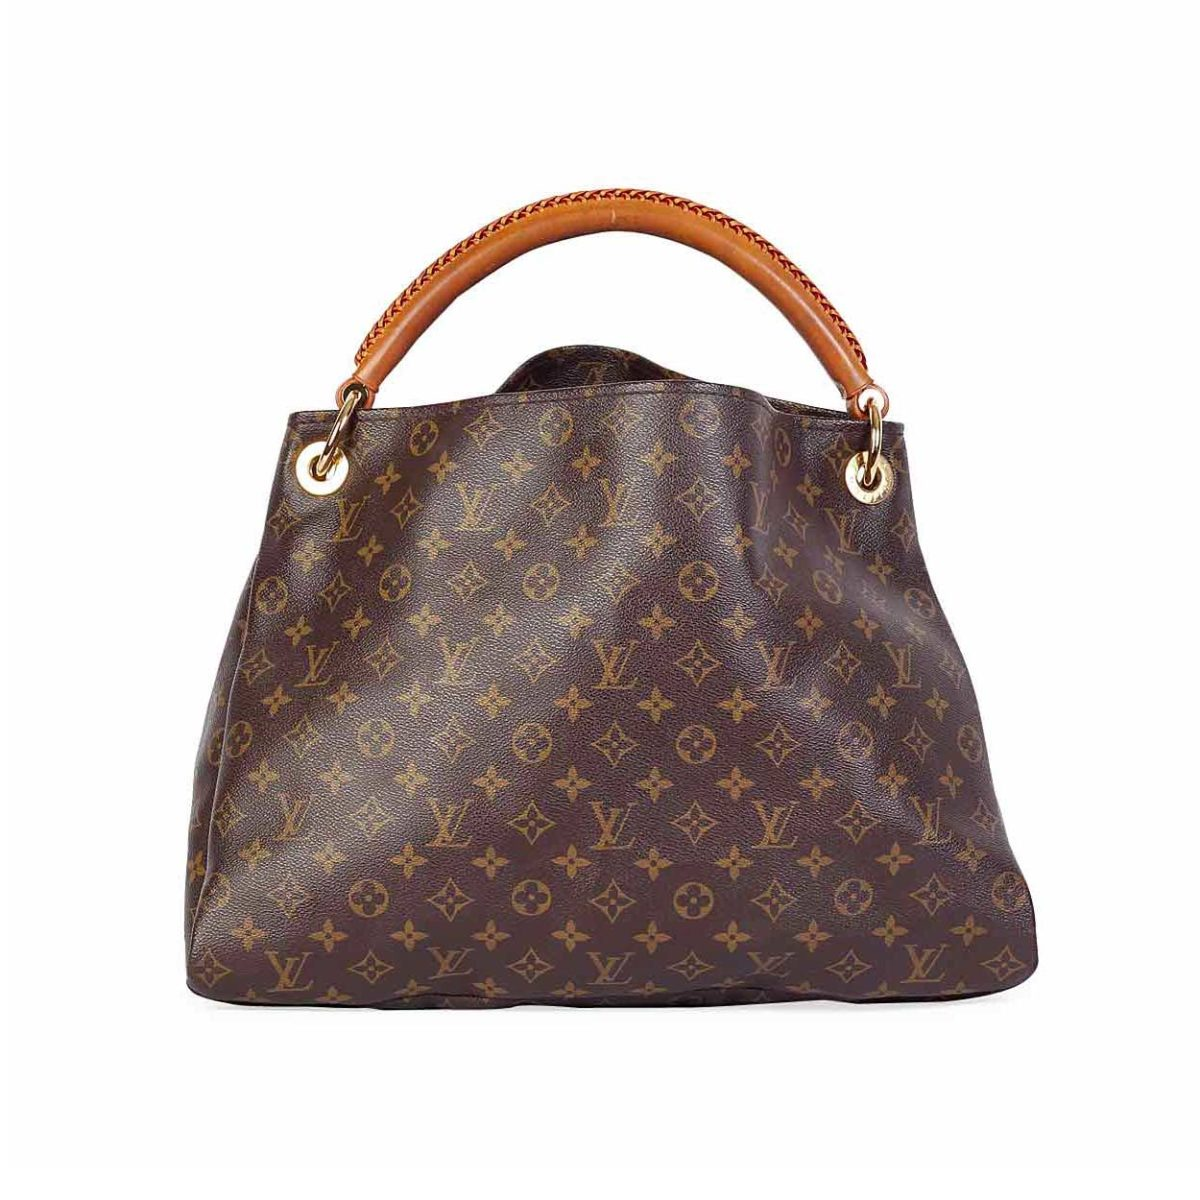 fcd0a0cefbae LOUIS VUITTON Monogram Artsy MM